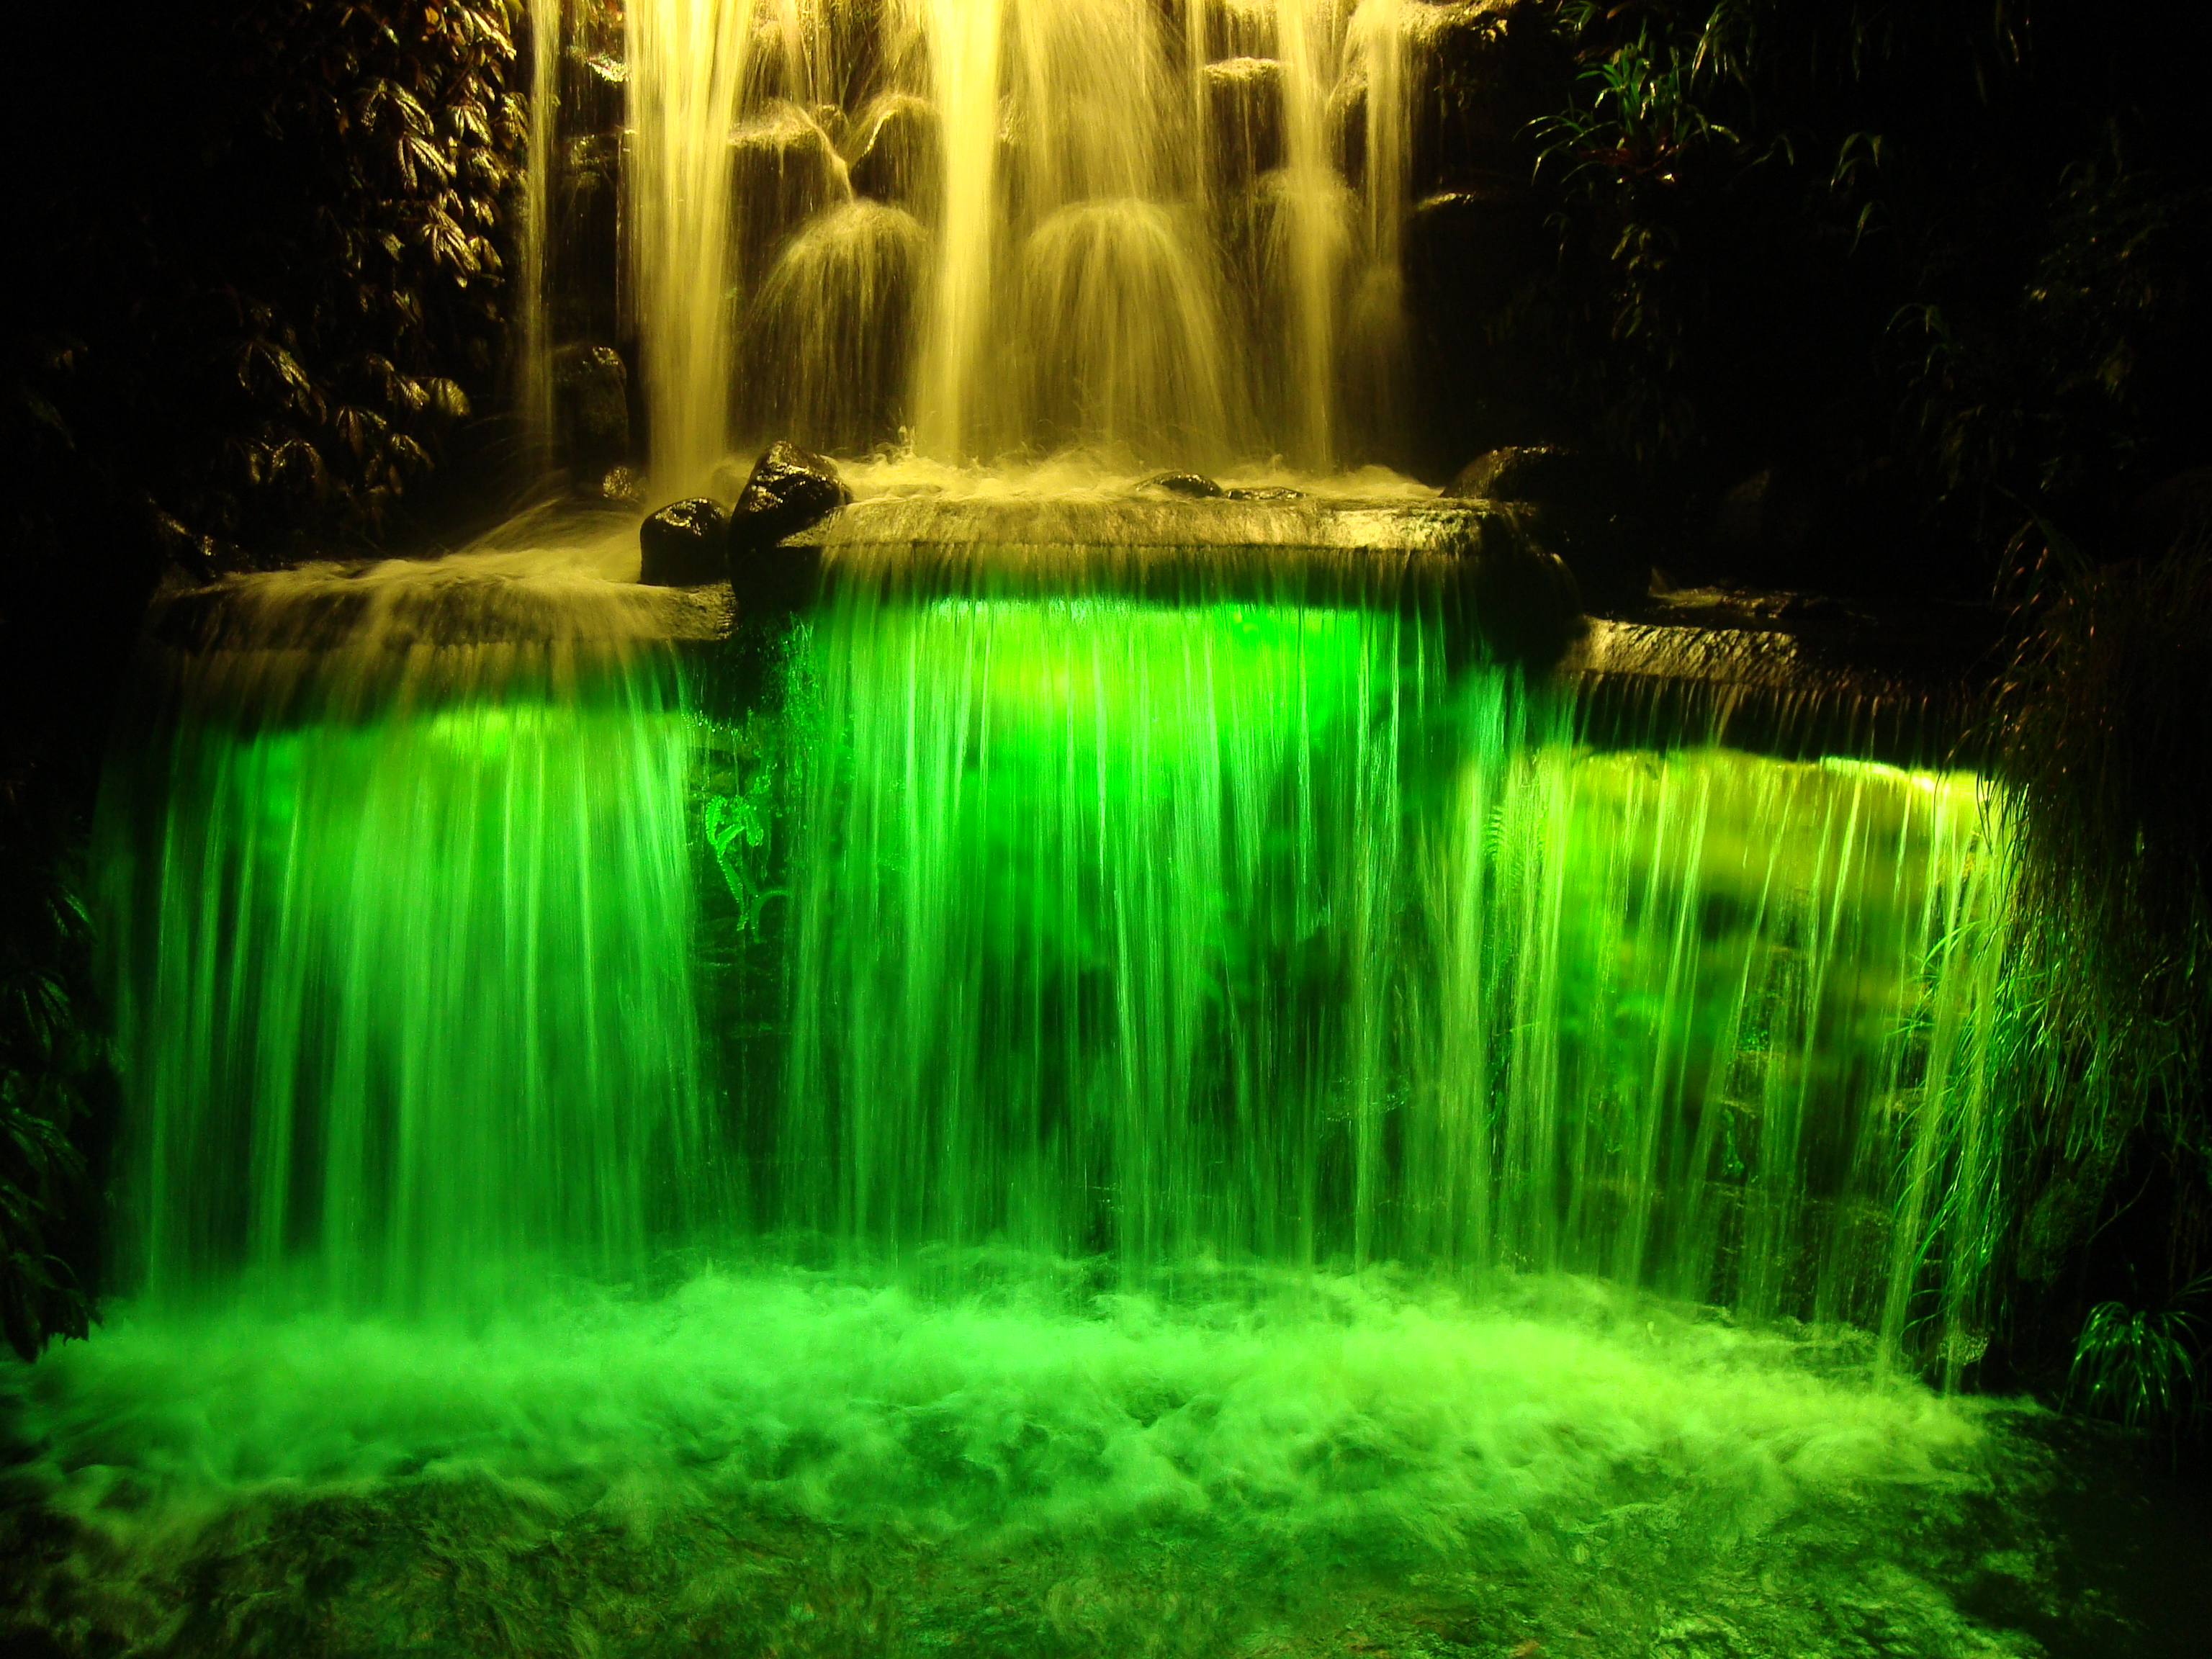 FileFestivalofLights-waterfall-lowerstages.jpg & File:FestivalofLights-waterfall-lowerstages.jpg - Wikimedia Commons